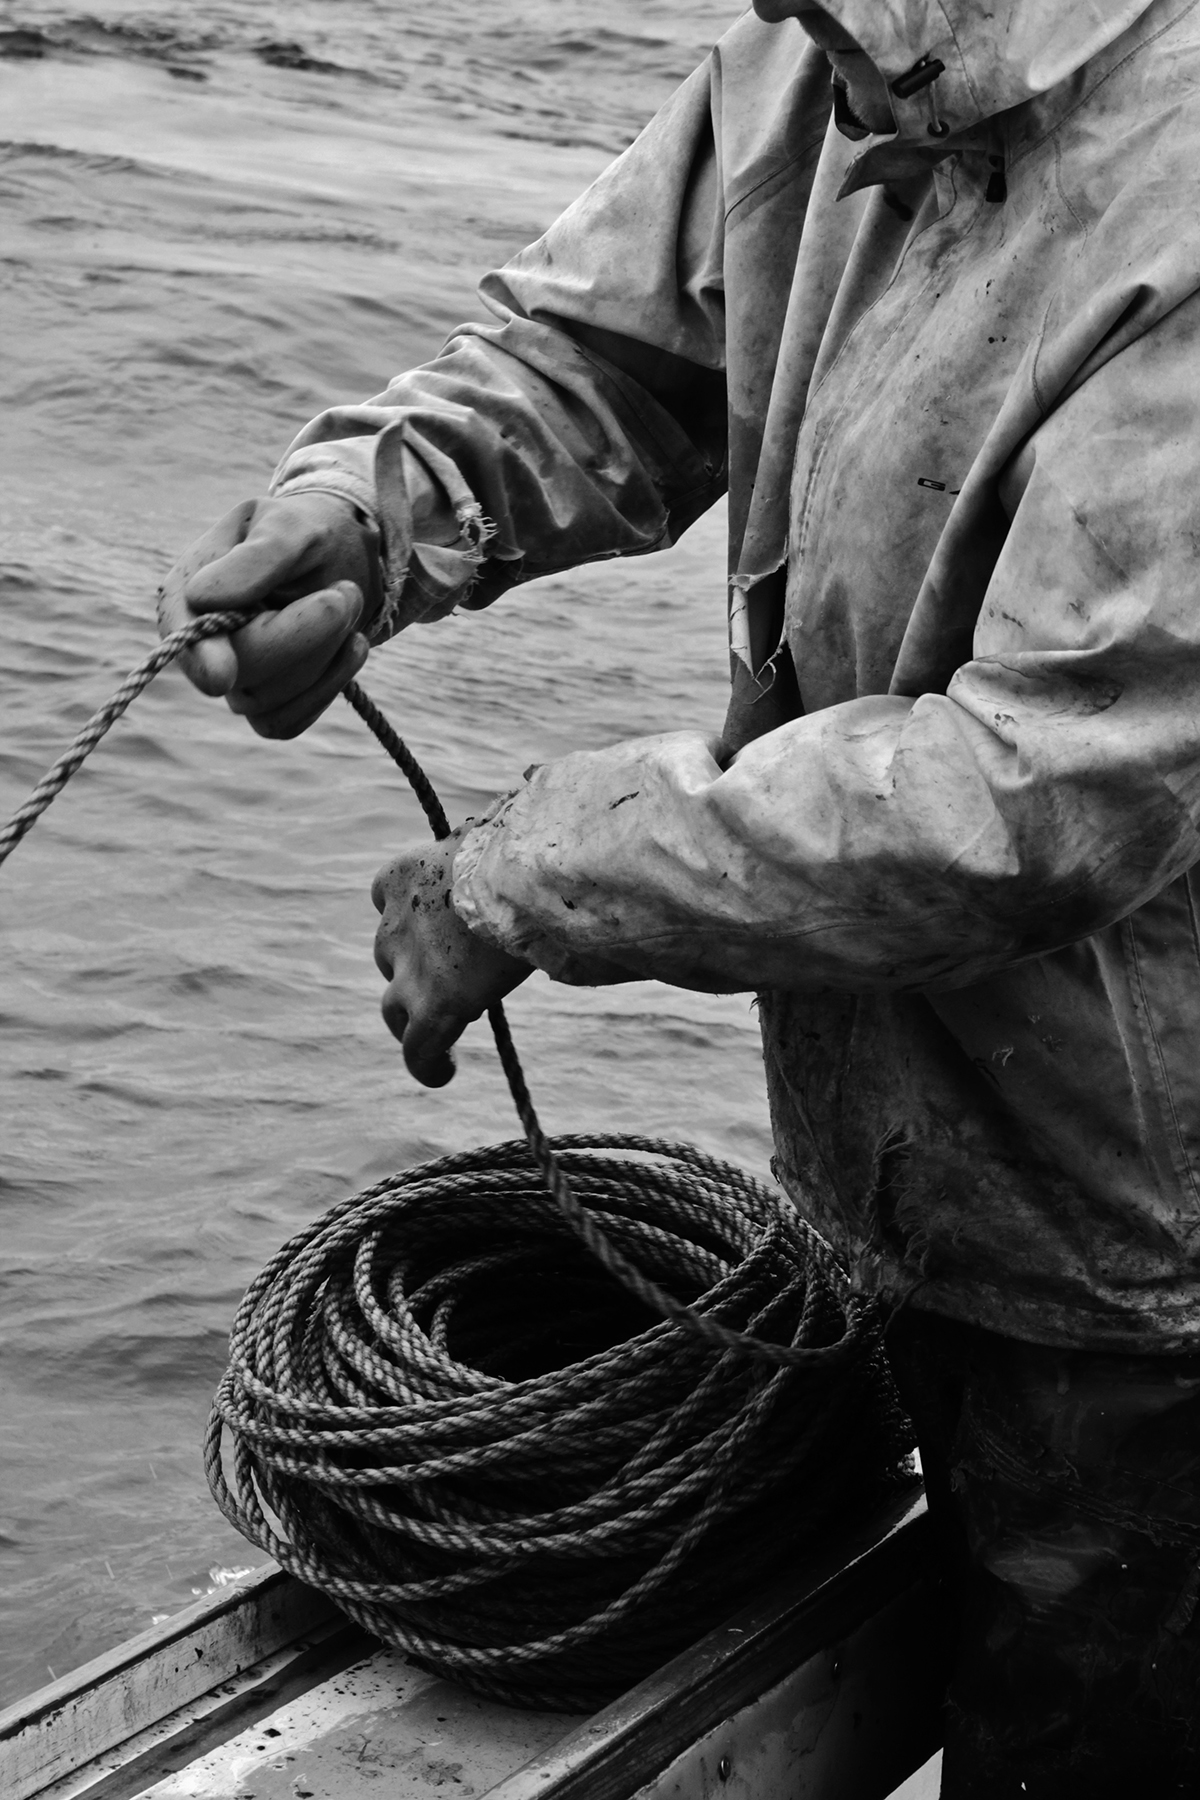 Coiling the Warps Stevie Ames coils rope. As a member of a multi- generational fishing family, coiling warps was probably one of the first things he learned as a child.